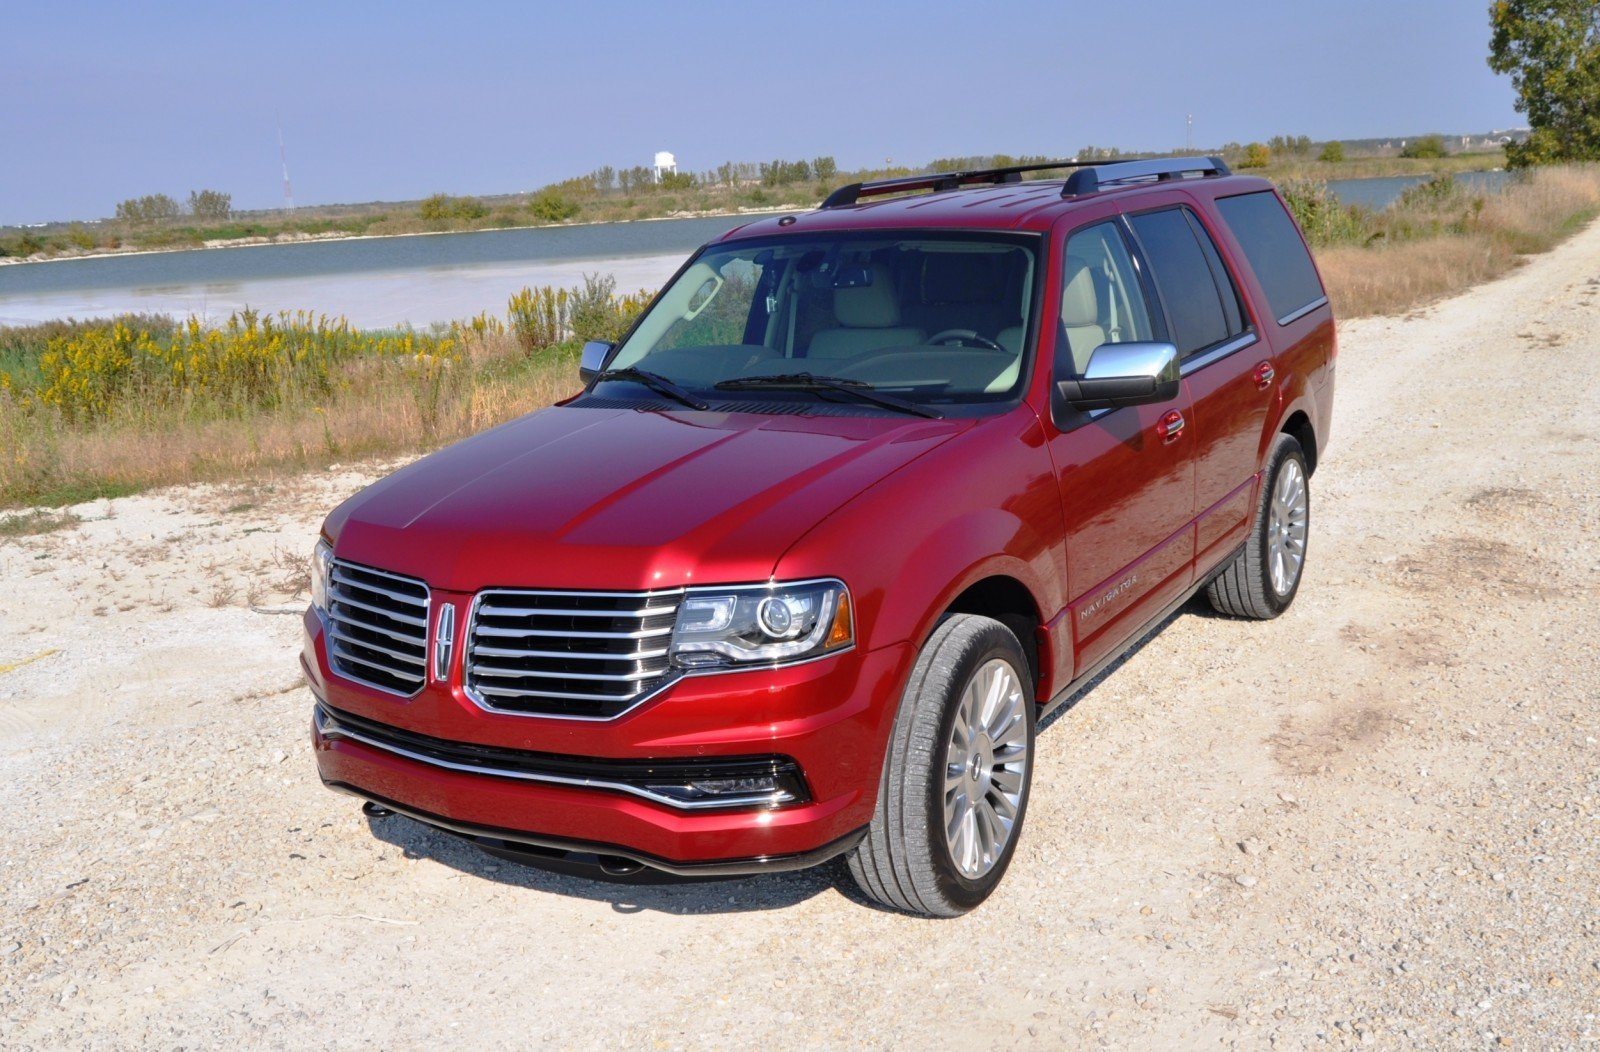 Road Test Review - 2015 Lincoln Navigator Is Totally Transformed By MR Shocks and EcoBoost 17